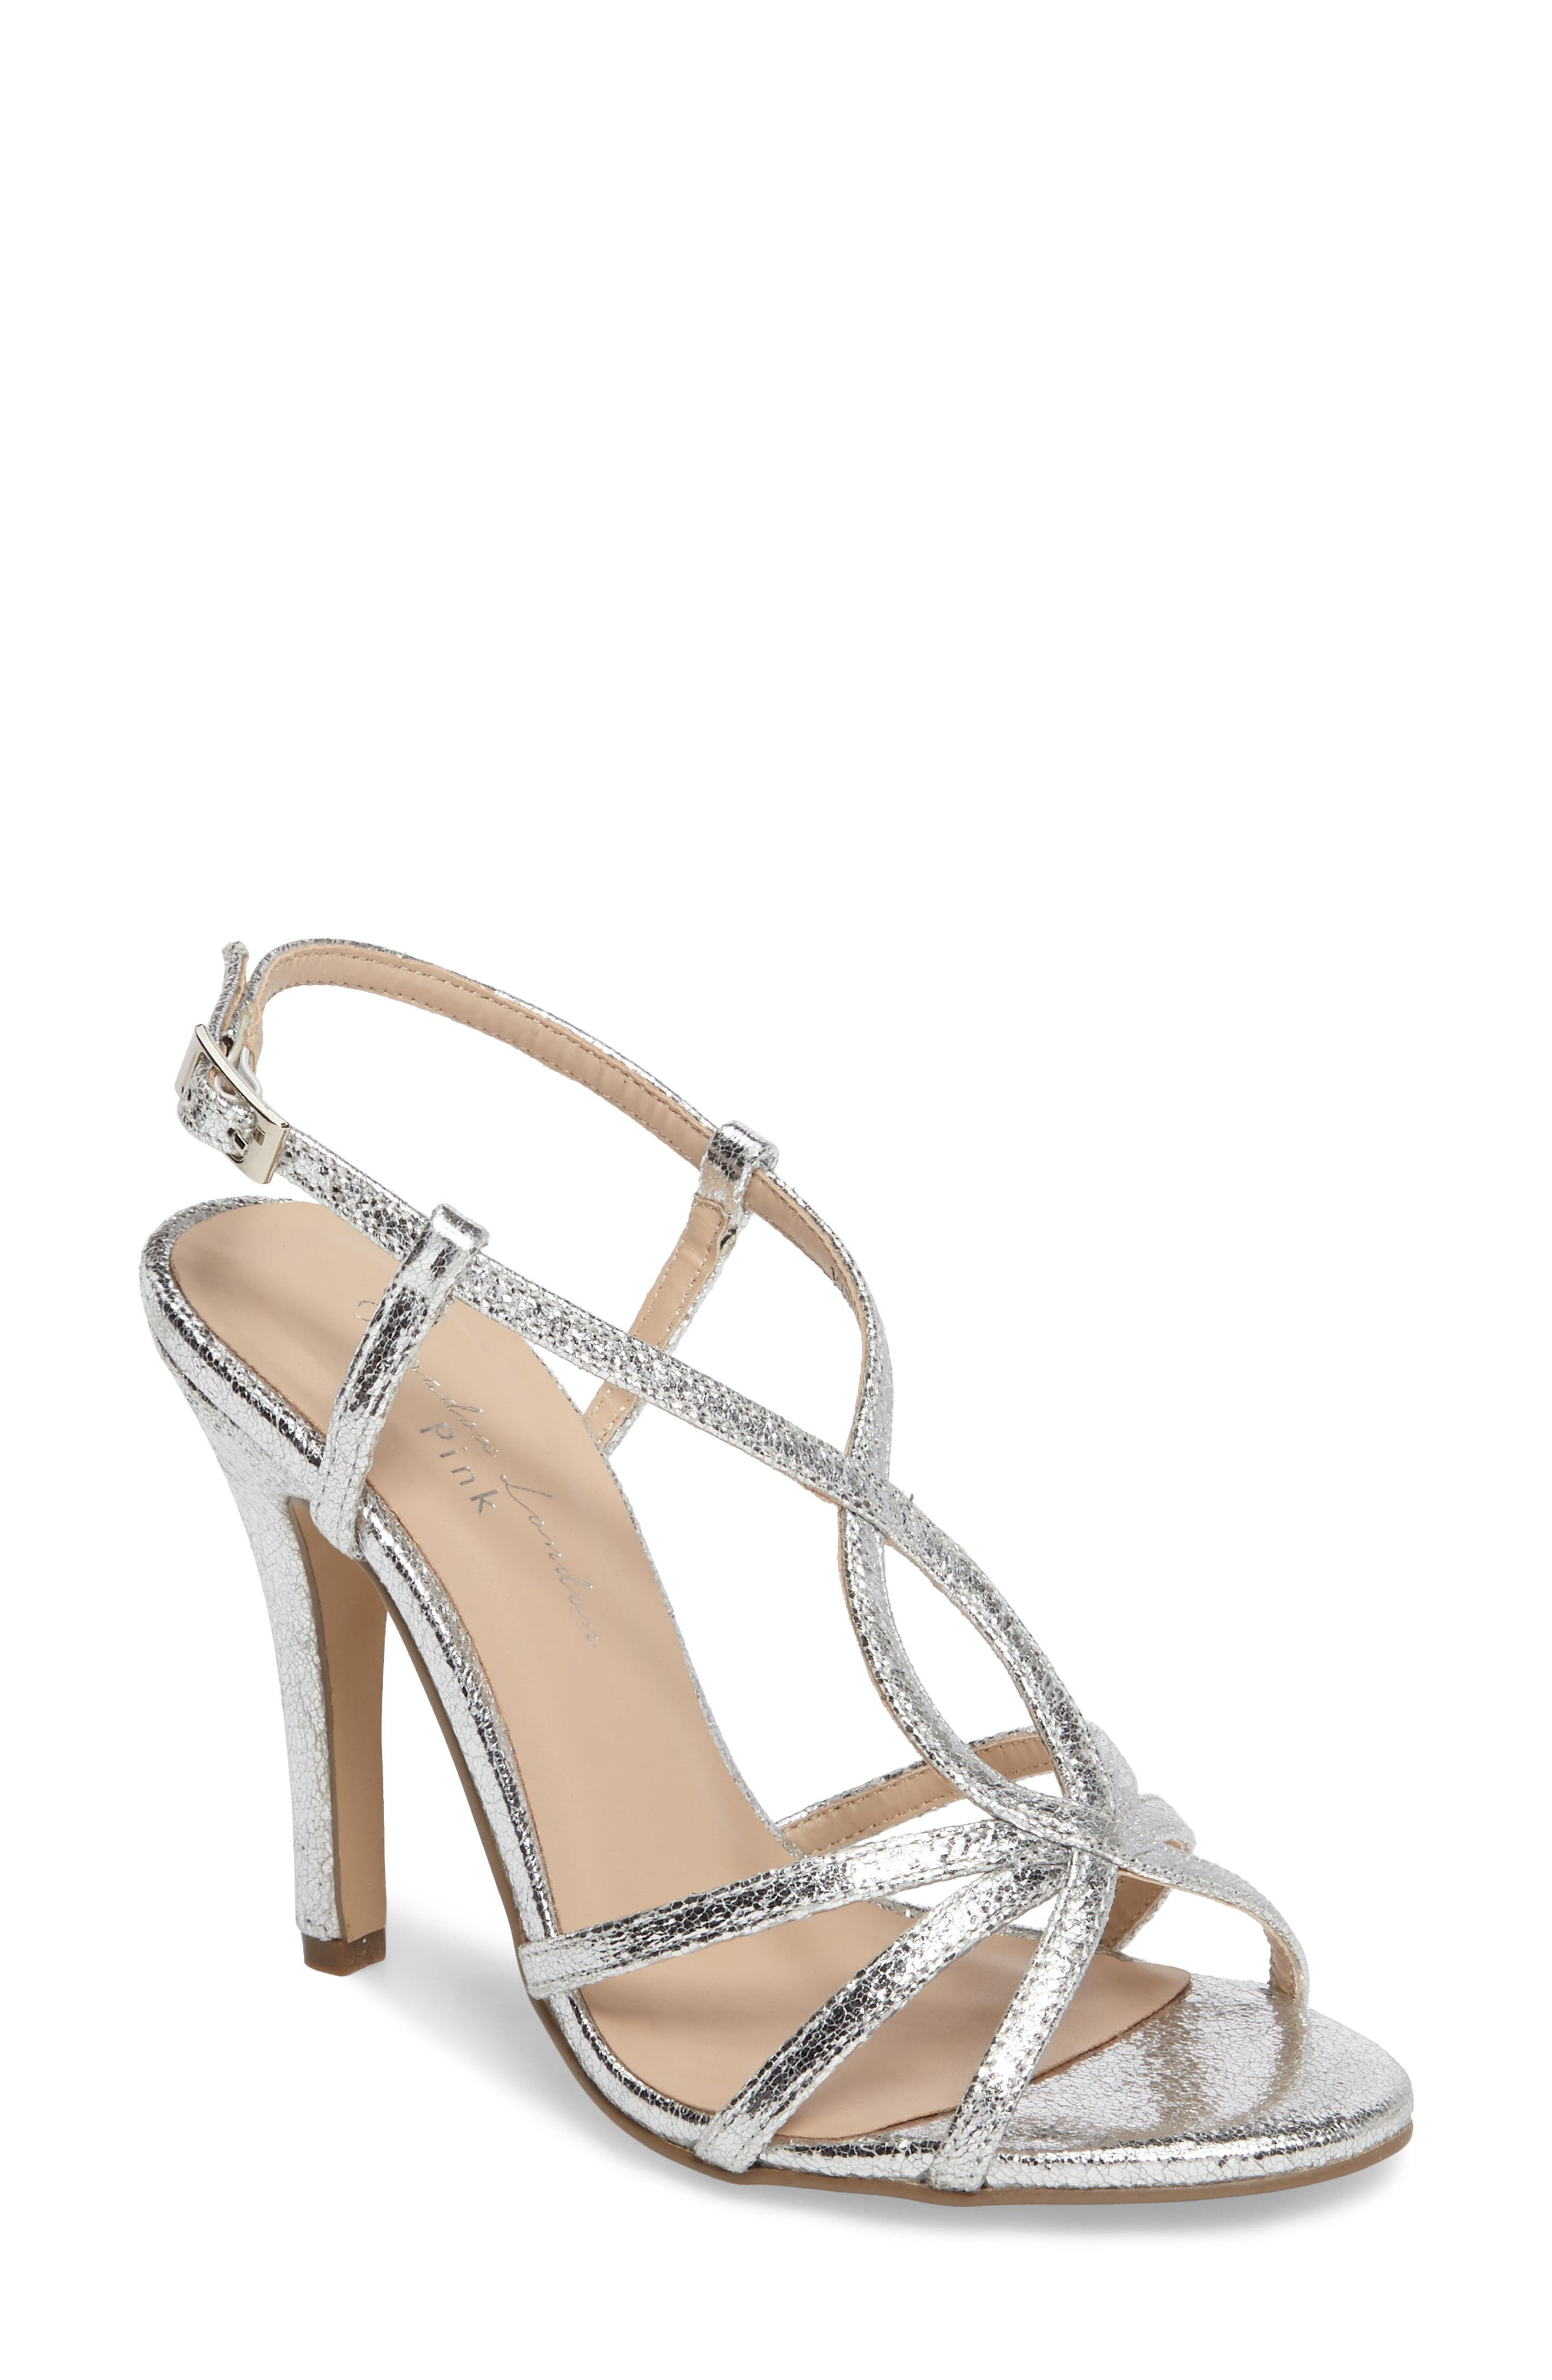 Magic Slingback Sandal,                         Main,                         color, Silver